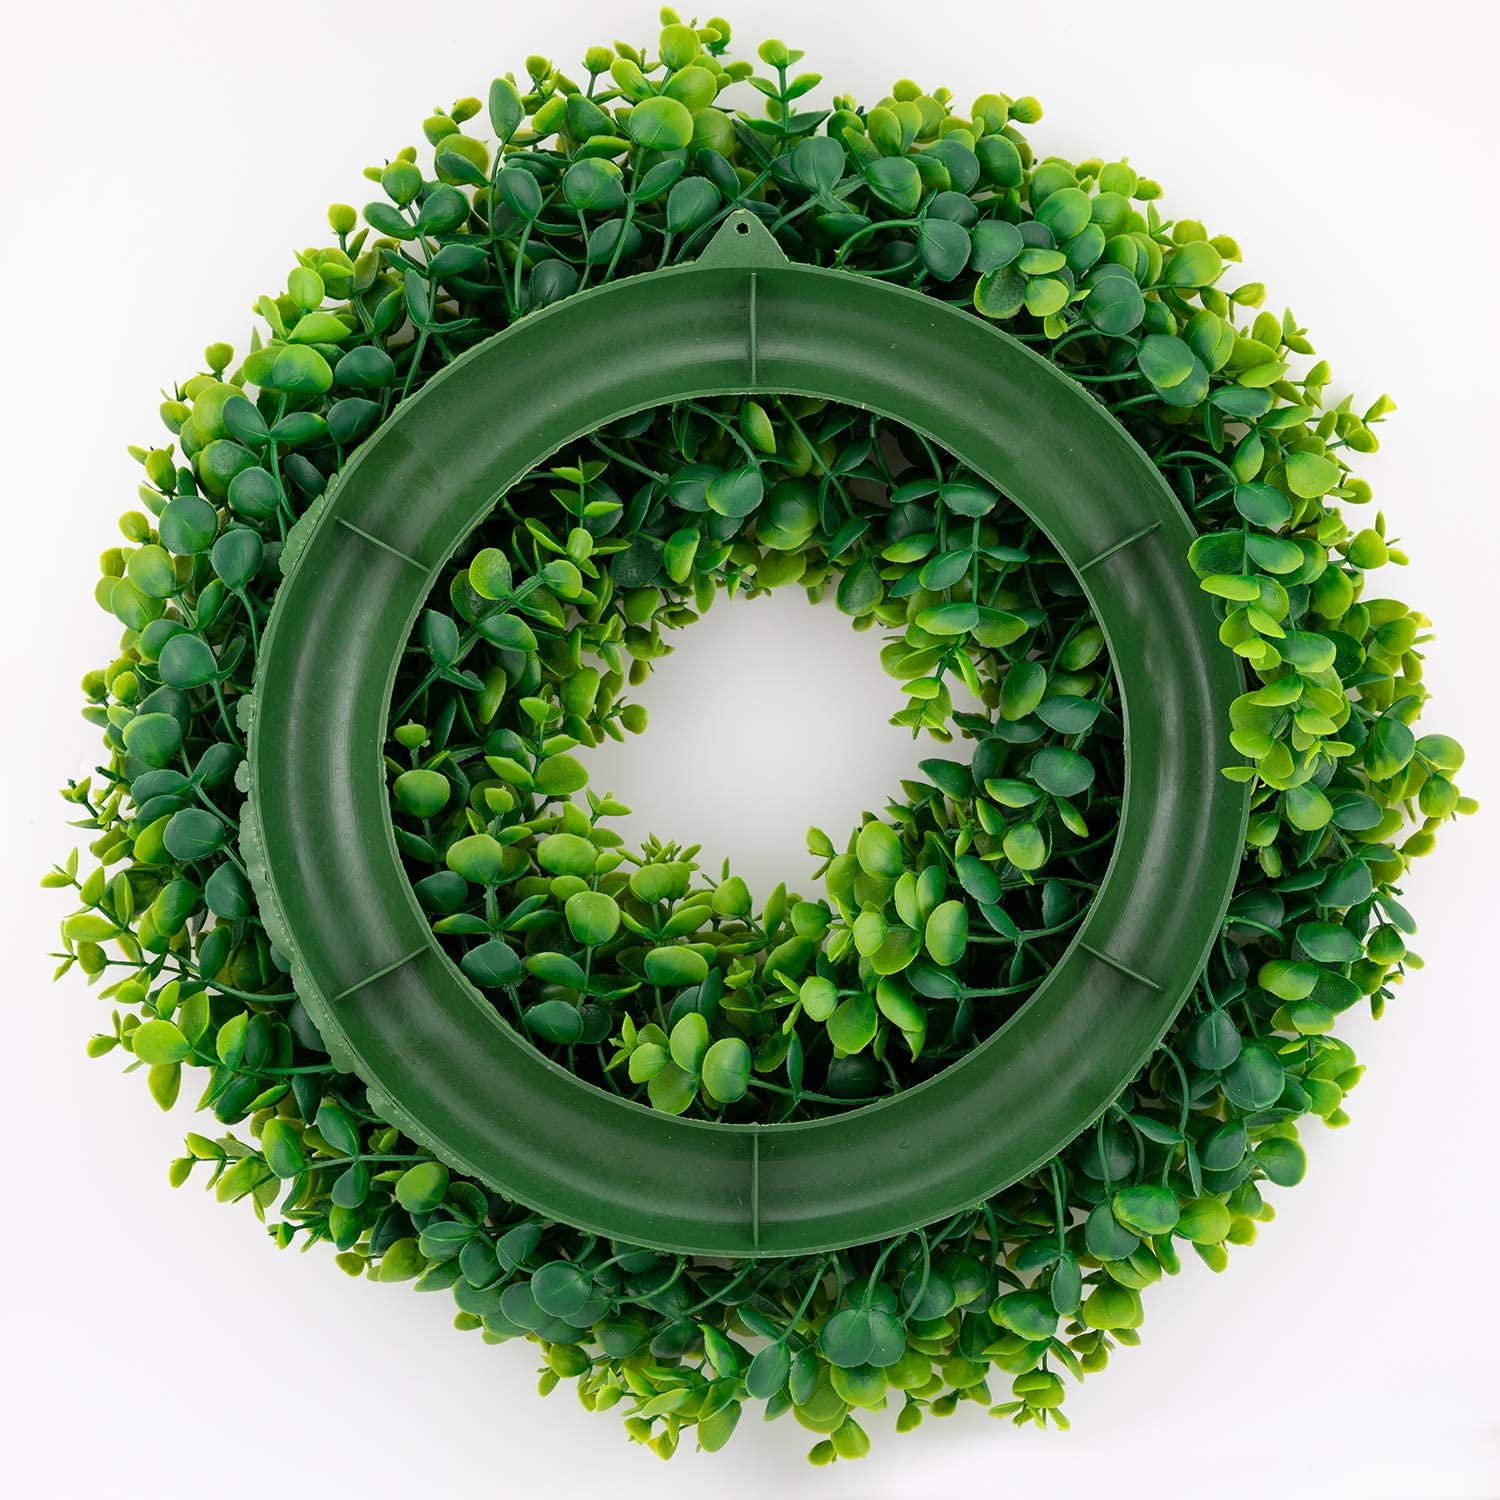 Bhappy Small Boxwood Wreath 10 inch Faux Greenery Wreath Centerpiece Indoor Front Door Home Wall Window Wedding Farmhouse Party Festival Decor